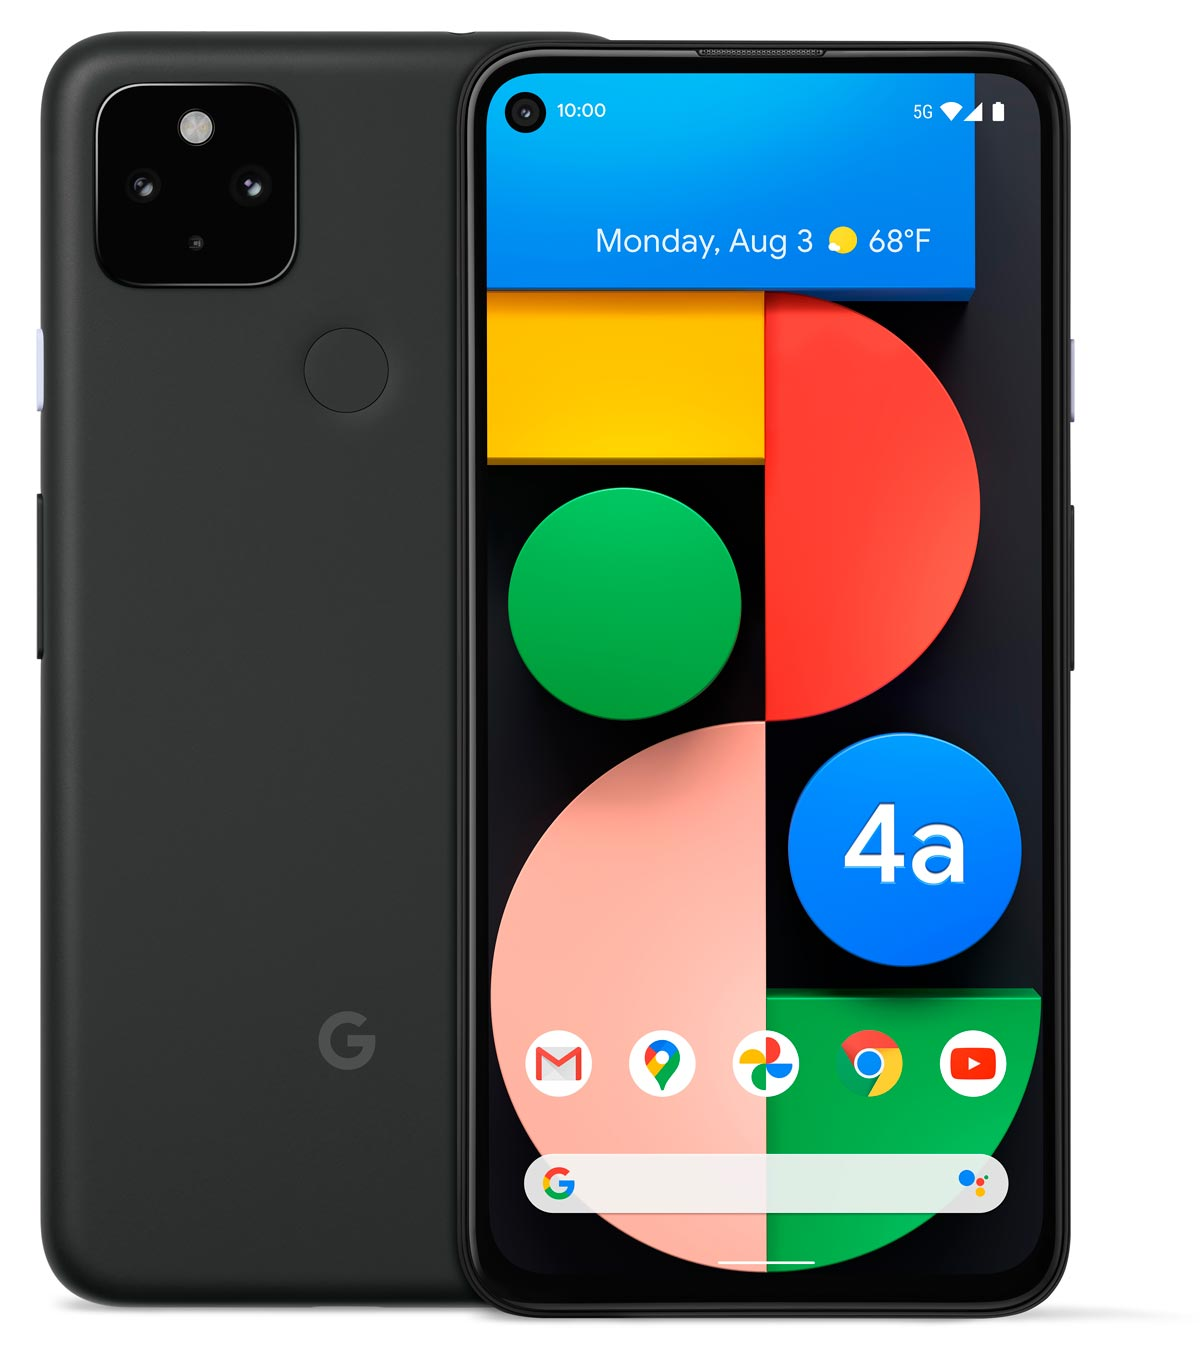 The Google Pixel 4a (5G) Android smartphone